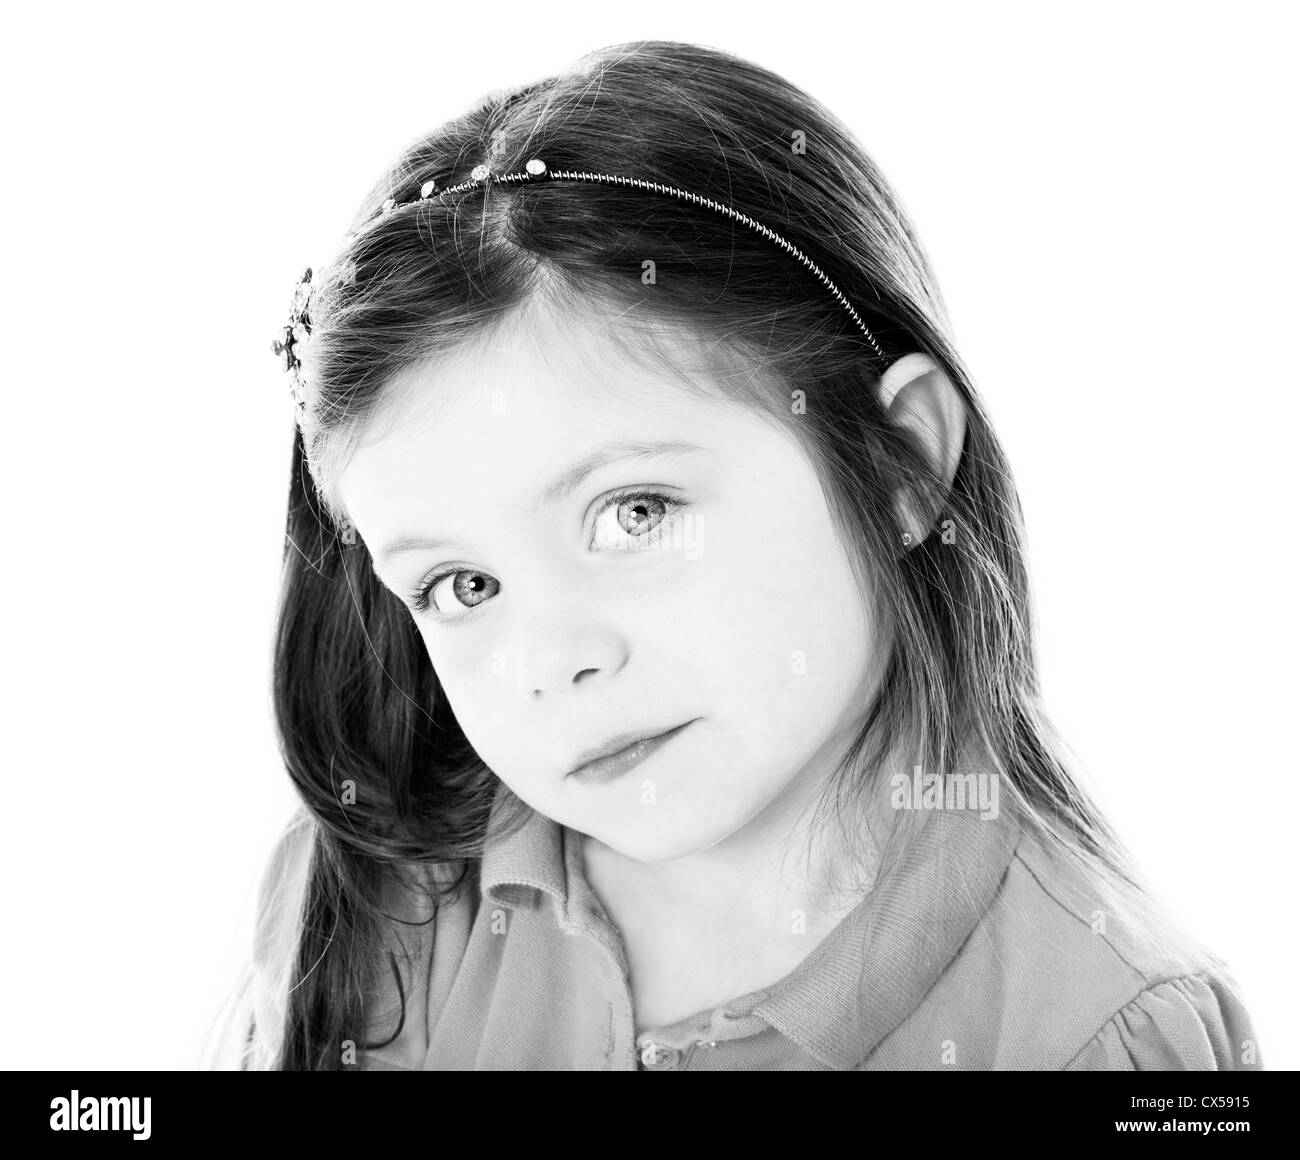 Young girl portait in black and white - Stock Image